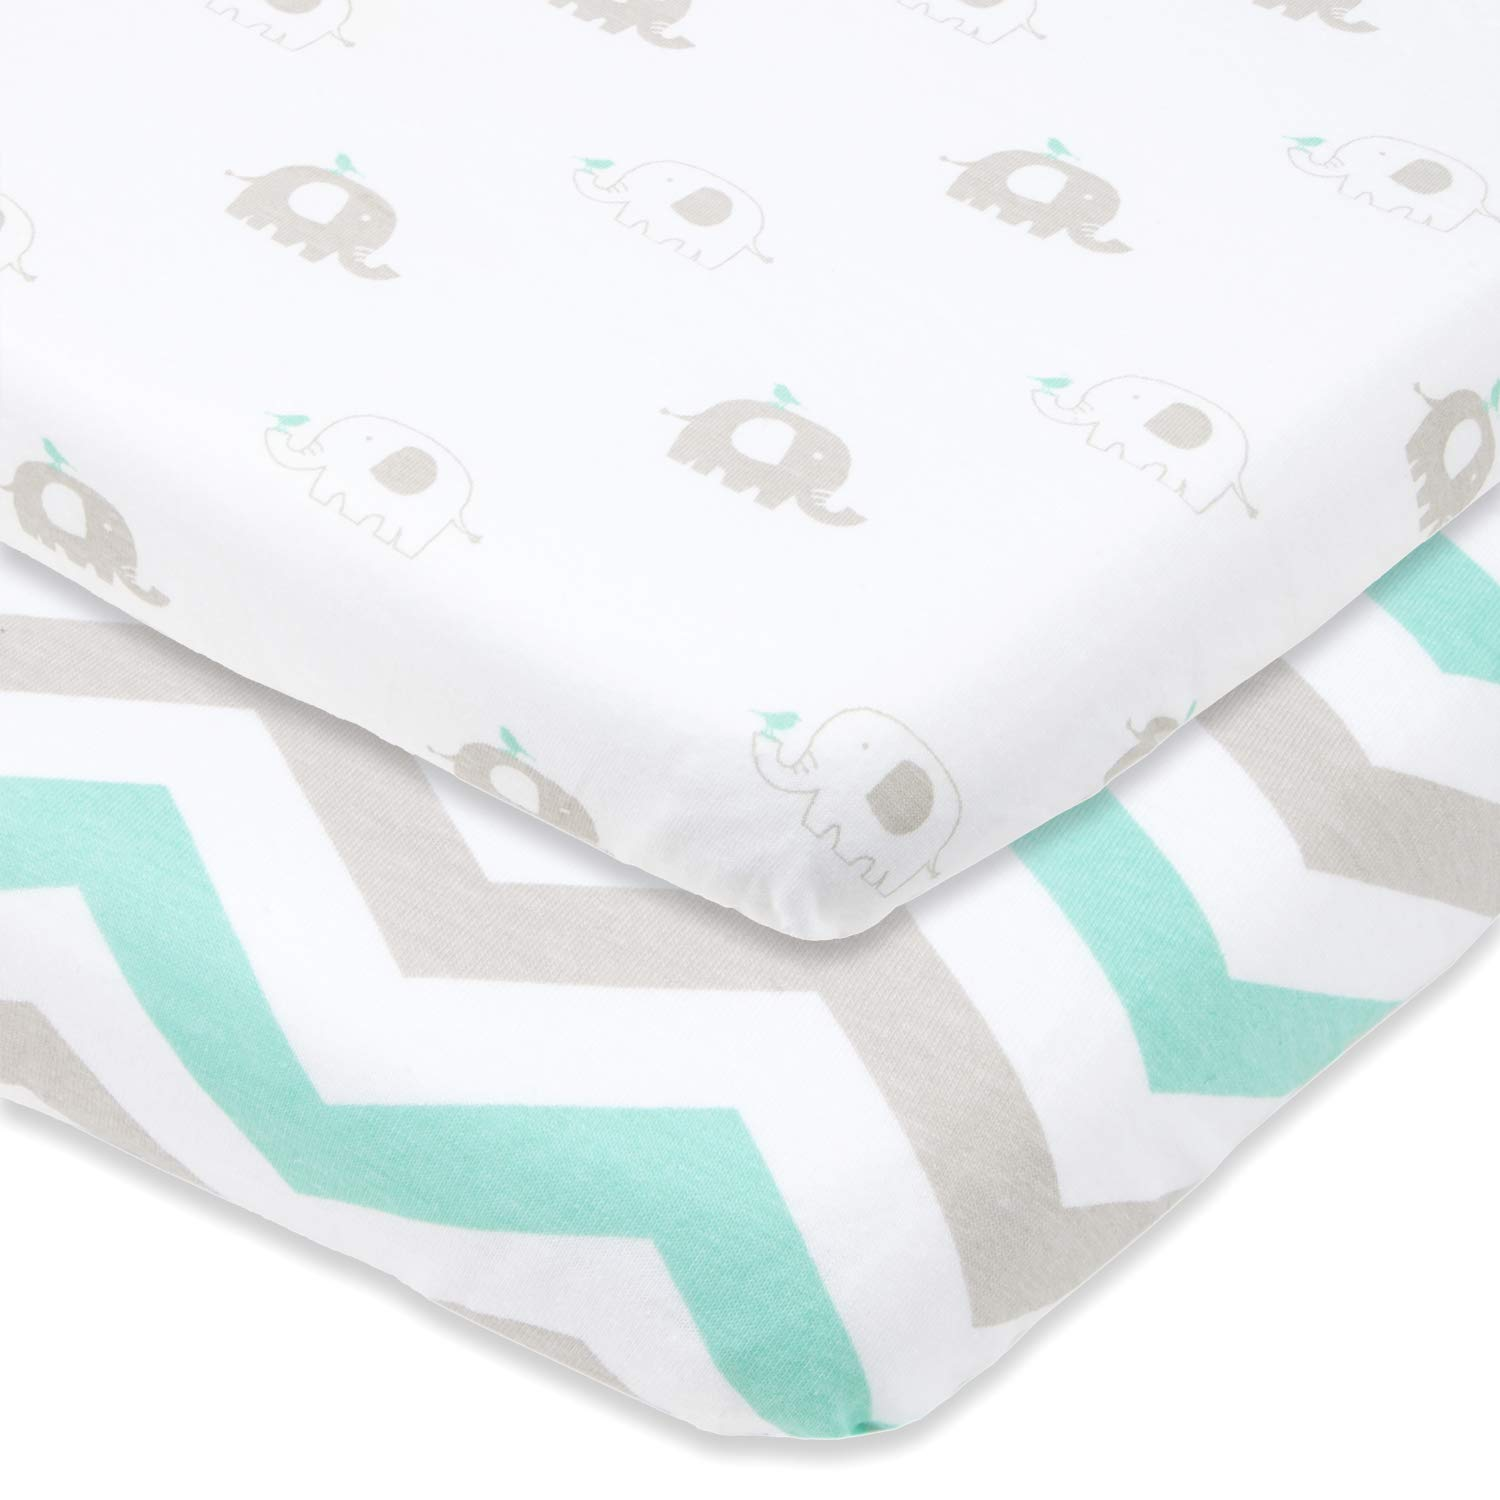 Baby Cradle Sheets Fitted 18x36x2 - Compatible With Arms Reach Co Sleeper Cambria, Clear Vue, Mini Ezee, Miclassic Bassinet - Pure Cotton Jersey Knit - Breathable Cradle Bedding - Gender Neutral